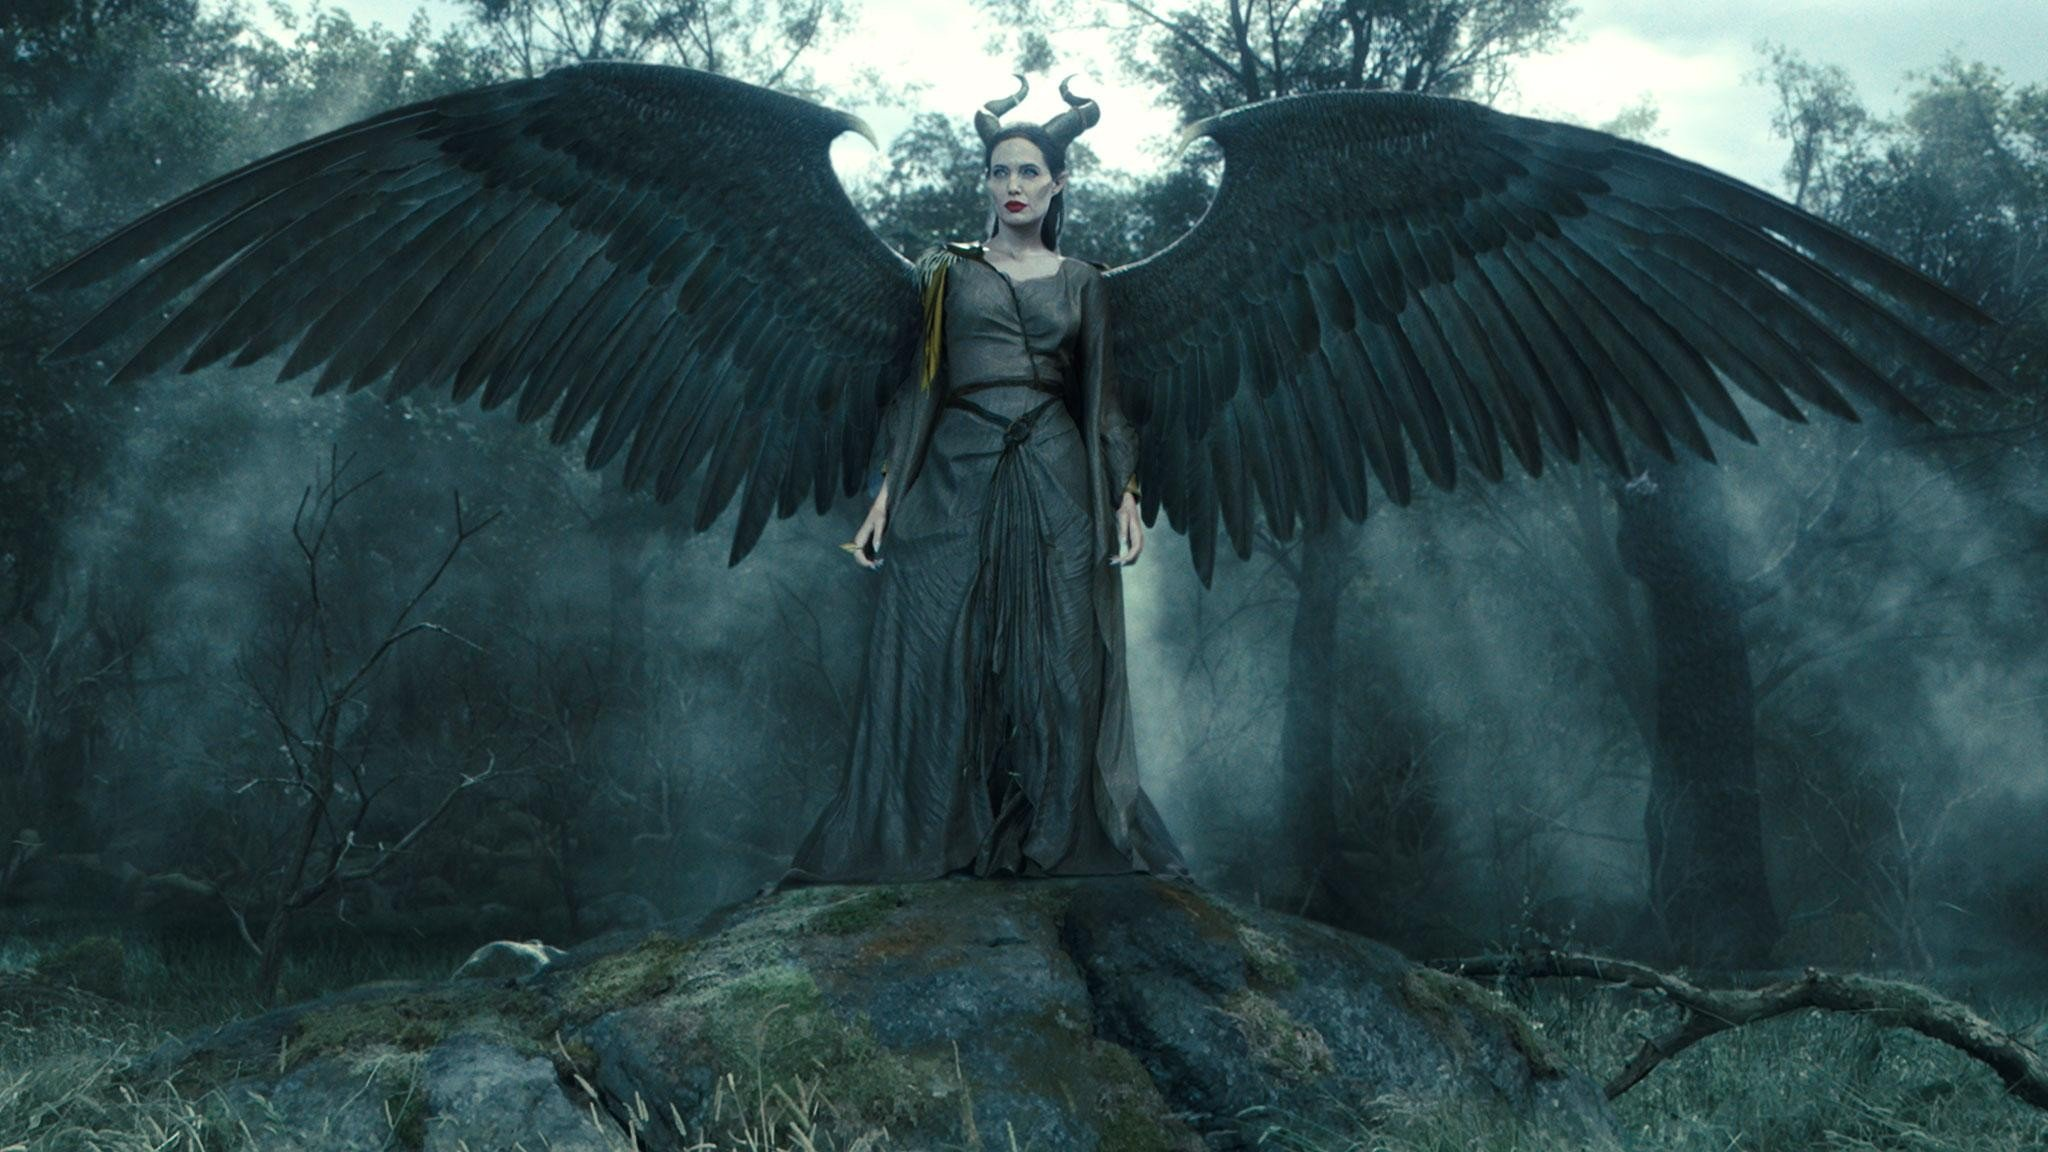 Maleficent Wallpapers Hd For Desktop Backgrounds